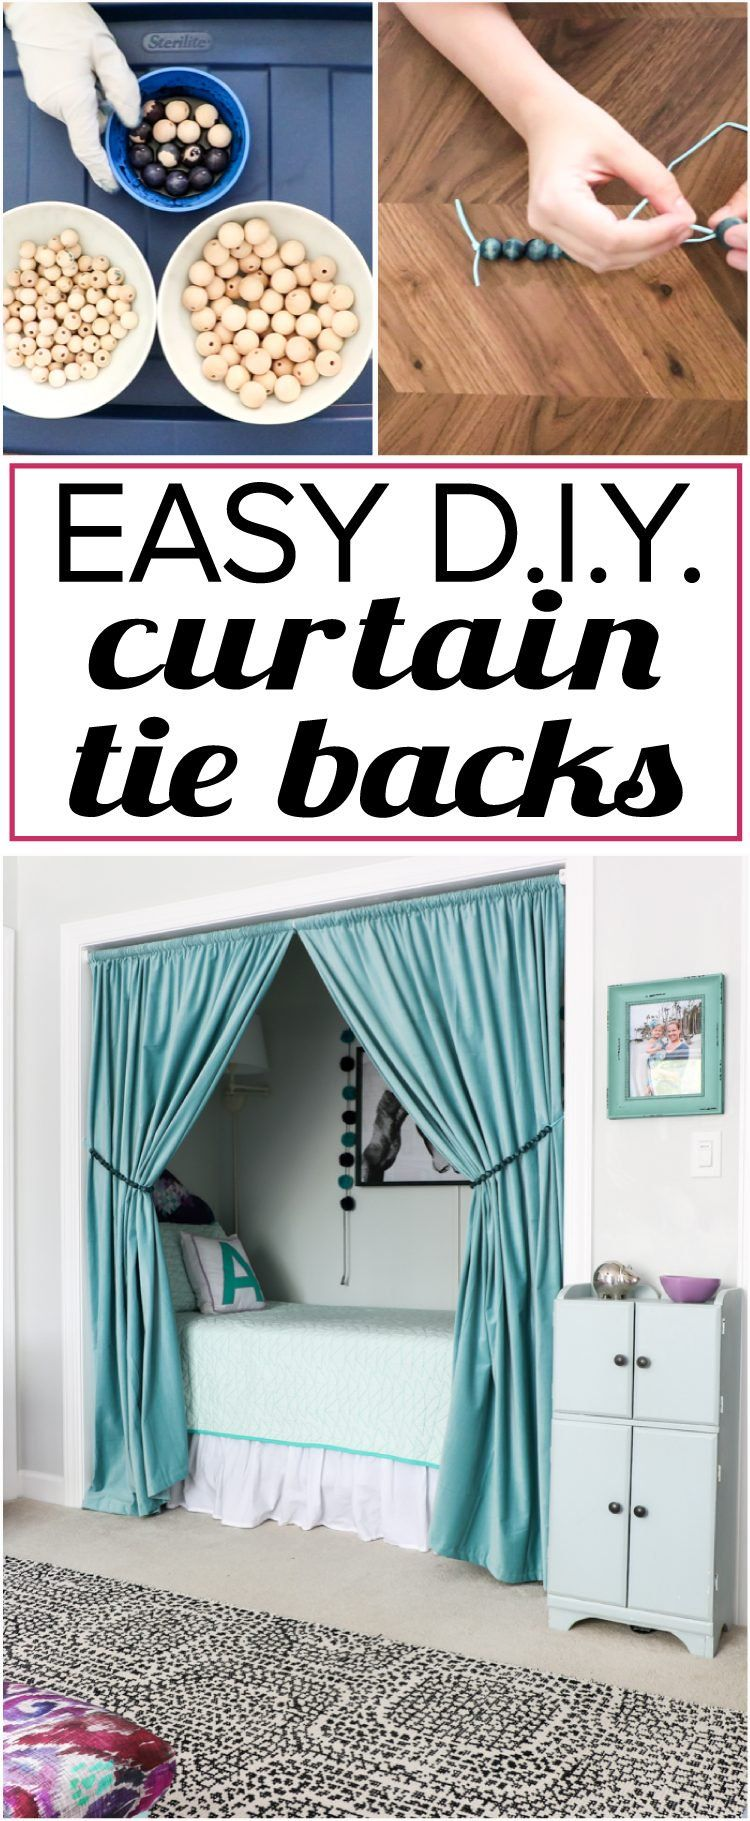 Quick And Easy Diy Curtain Tie Backs Curtain Tie Backs Curtain